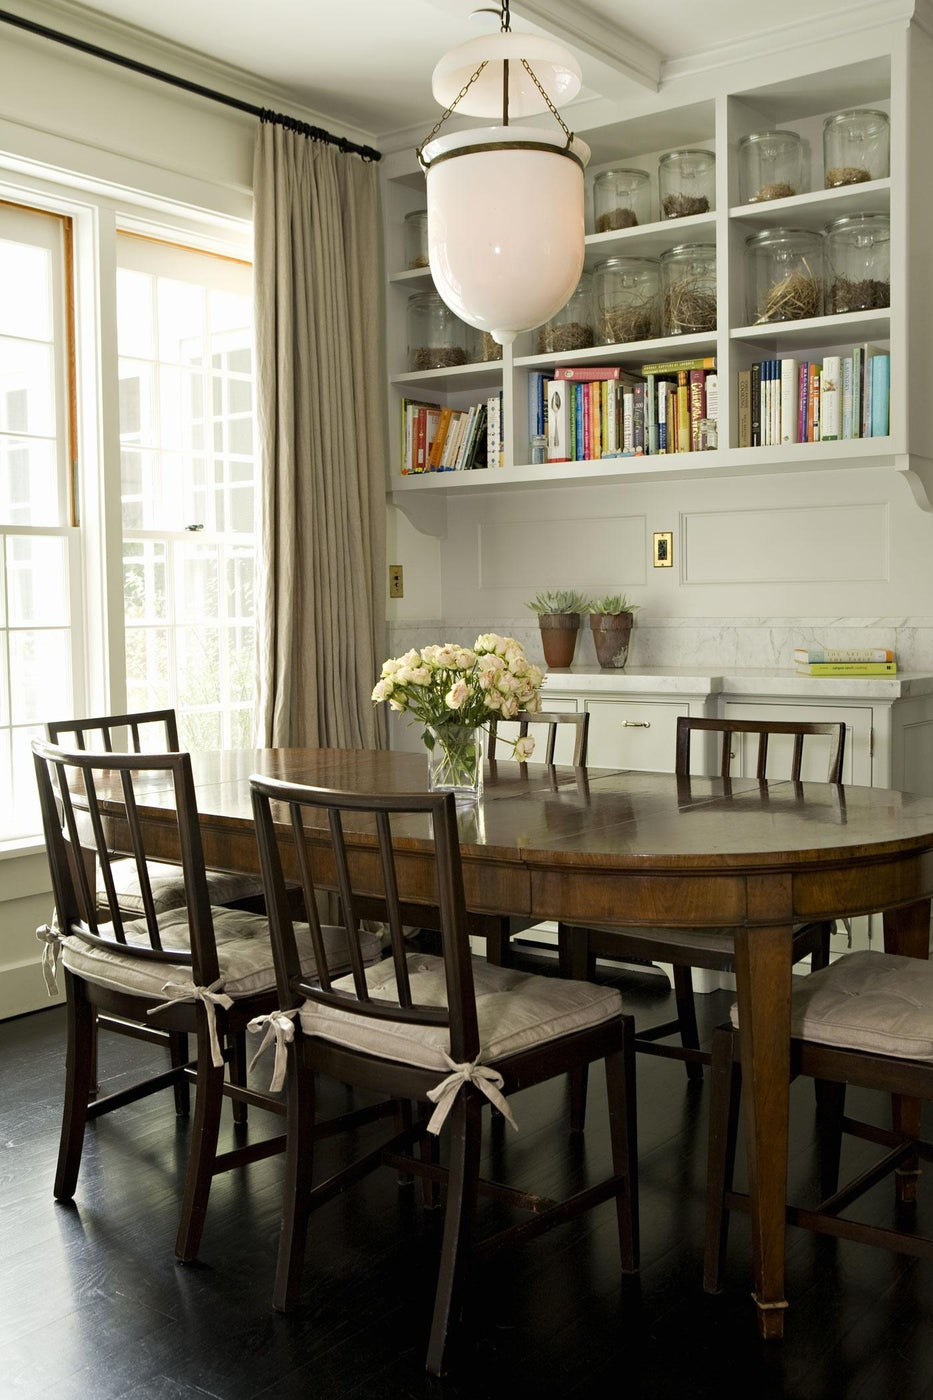 Breakfast room with built-in shelves, marble backsplash, and French doors